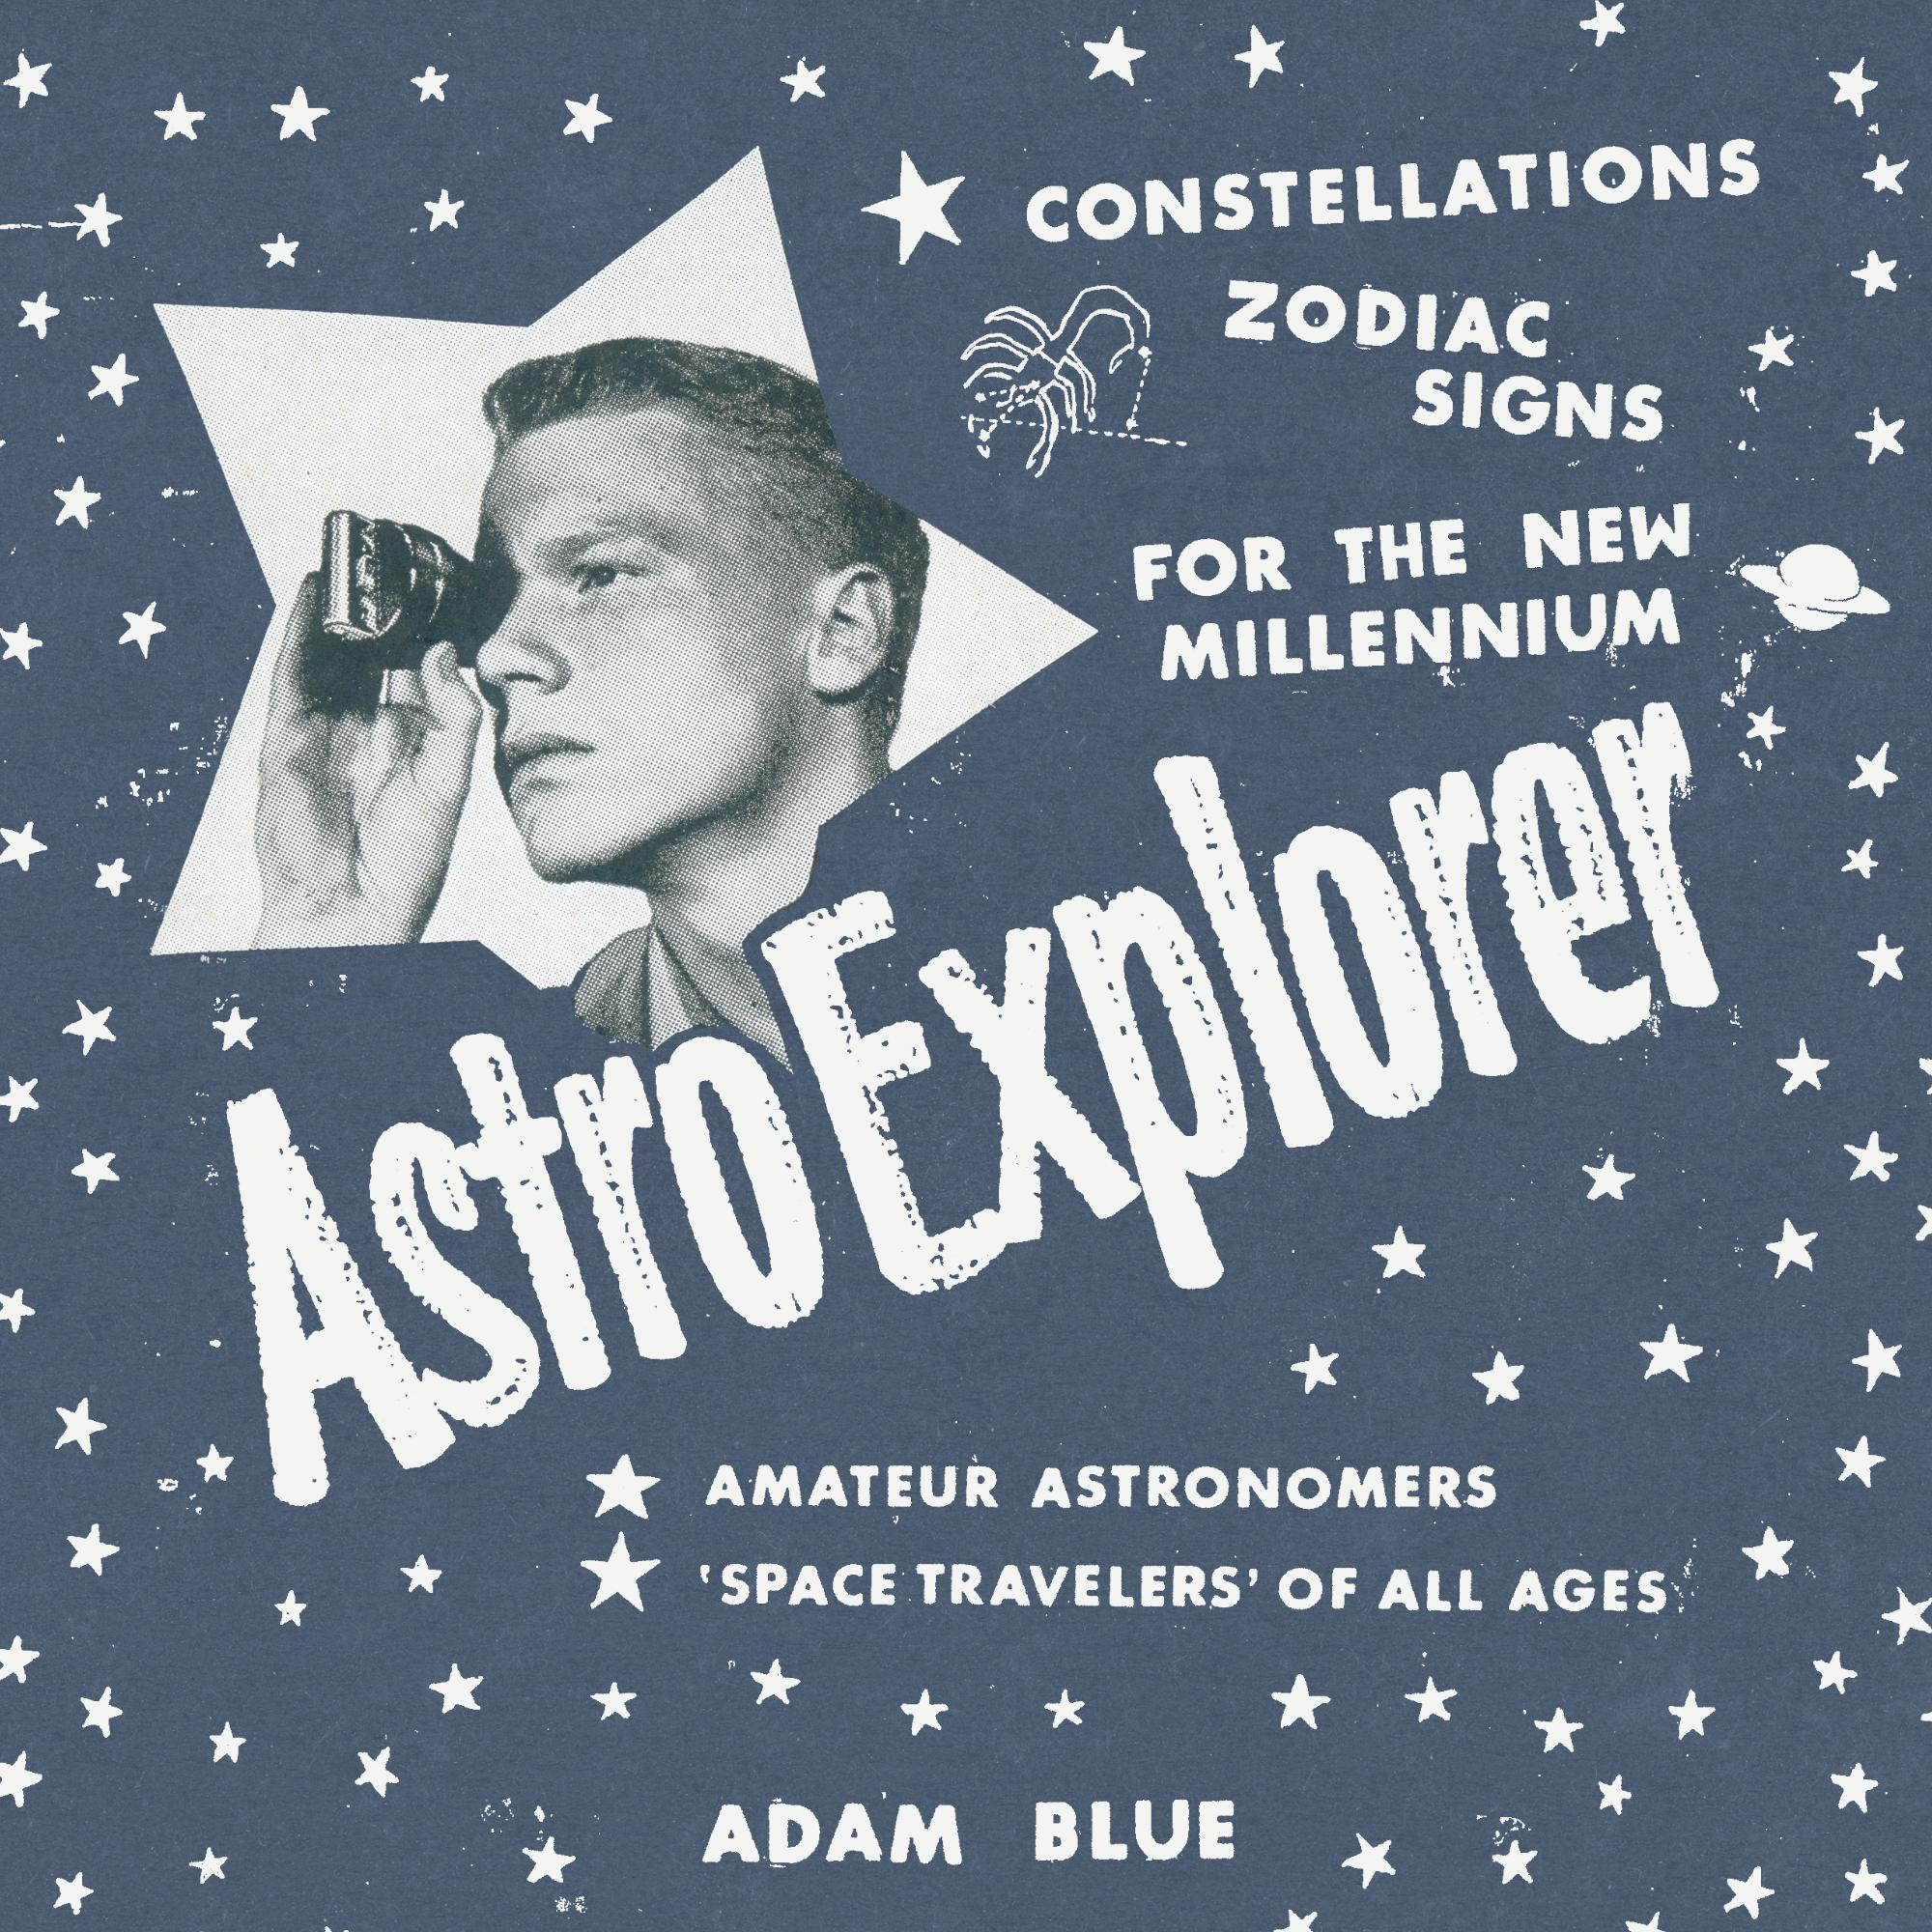 Adam Blue AstroExplorer Book Cover Constellations Horoscopes Humor Drawing